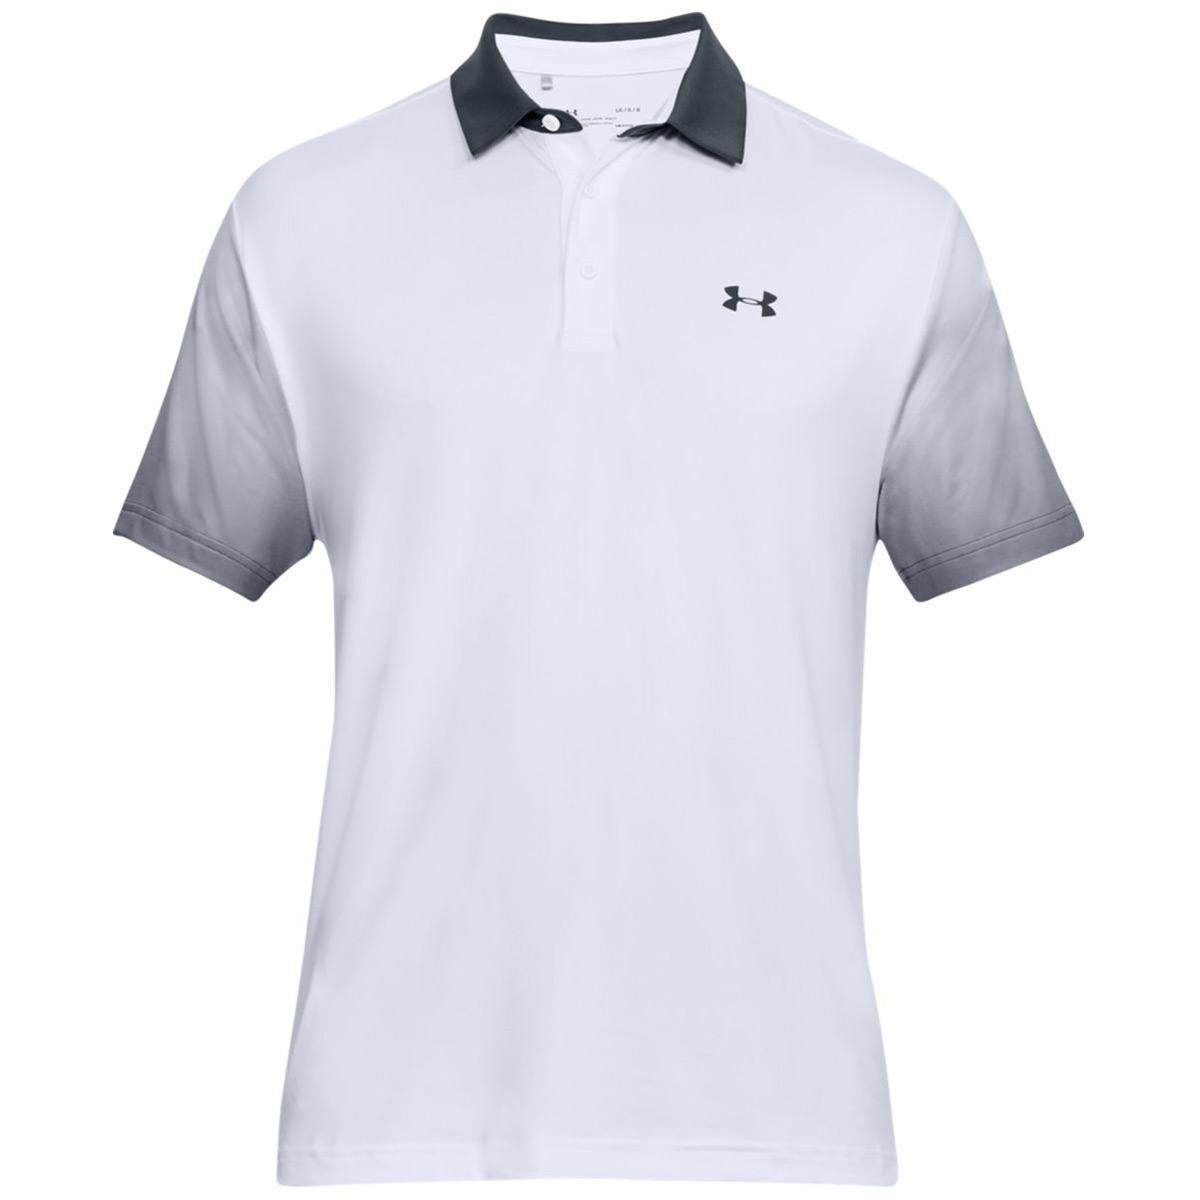 Under-Armour-Mens-UA-Playoff-Performance-Golf-Polo-Shirt-42-OFF-RRP thumbnail 59